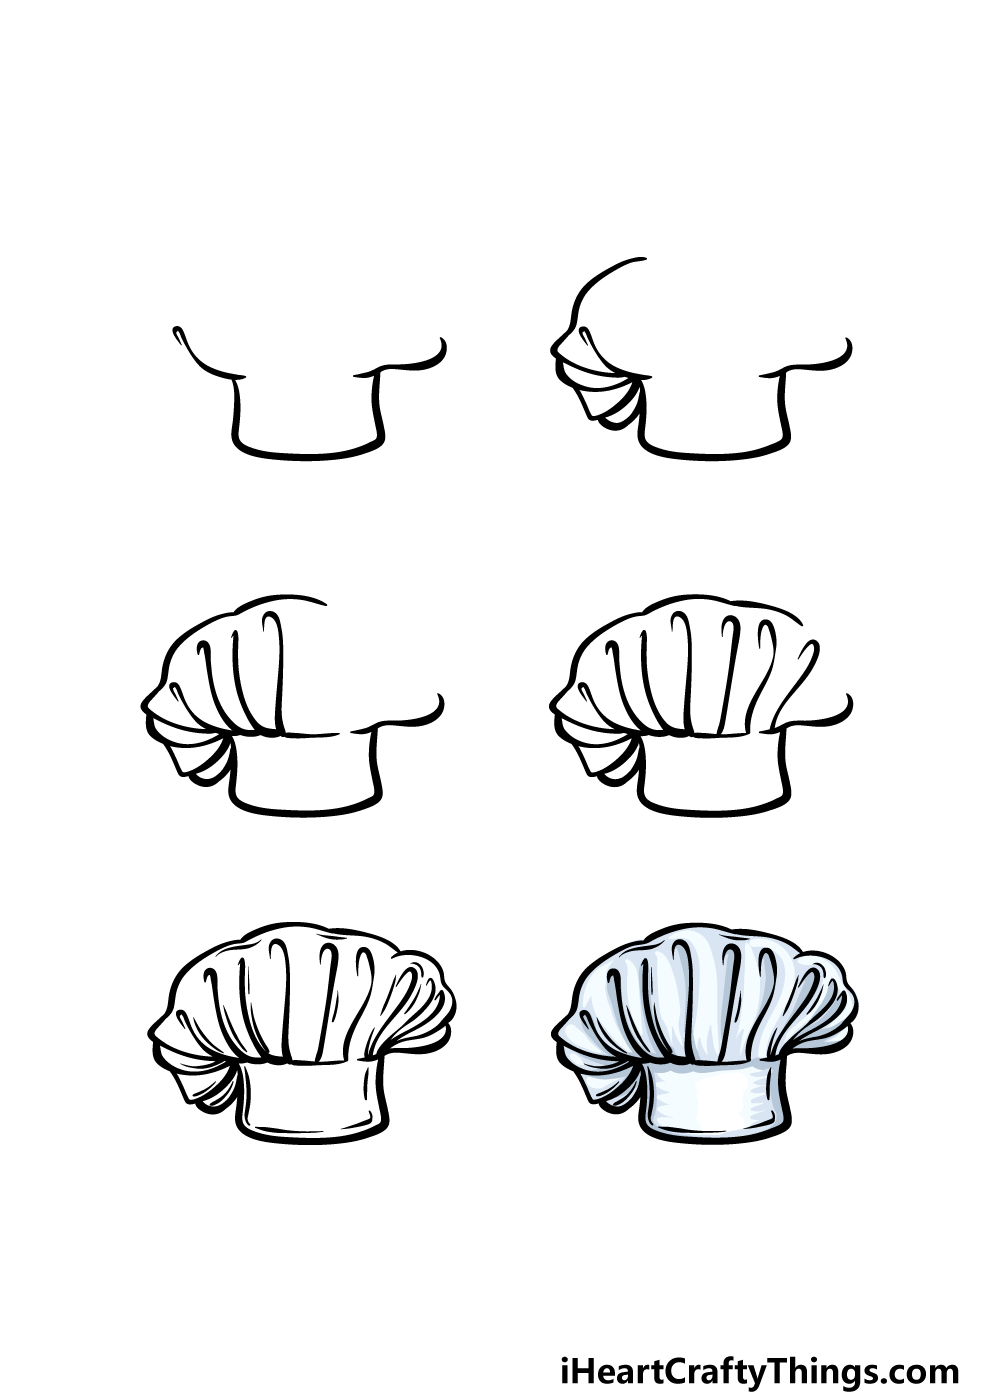 how to draw a chef's hat in 6 steps